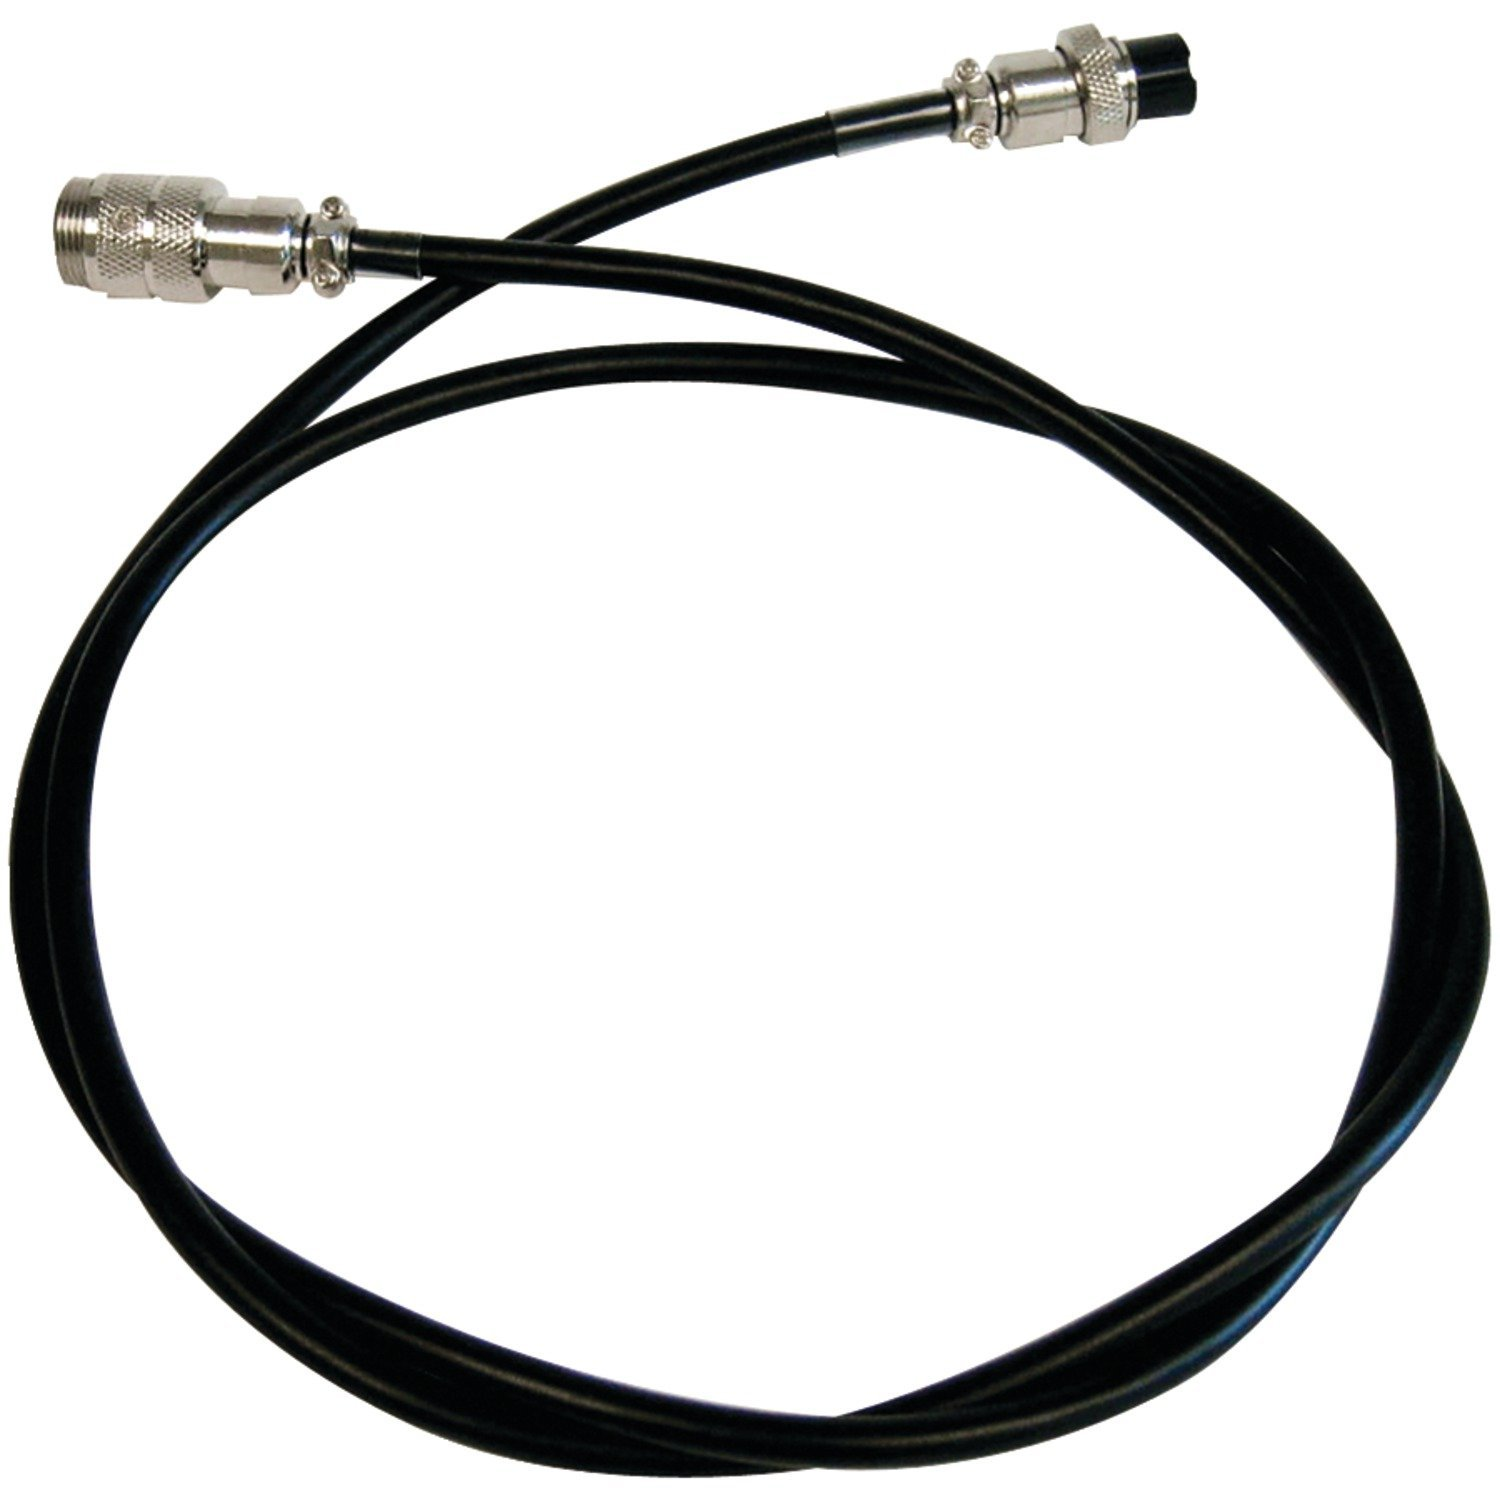 Cobra AC 702 4-foot Microphone Extension Cable